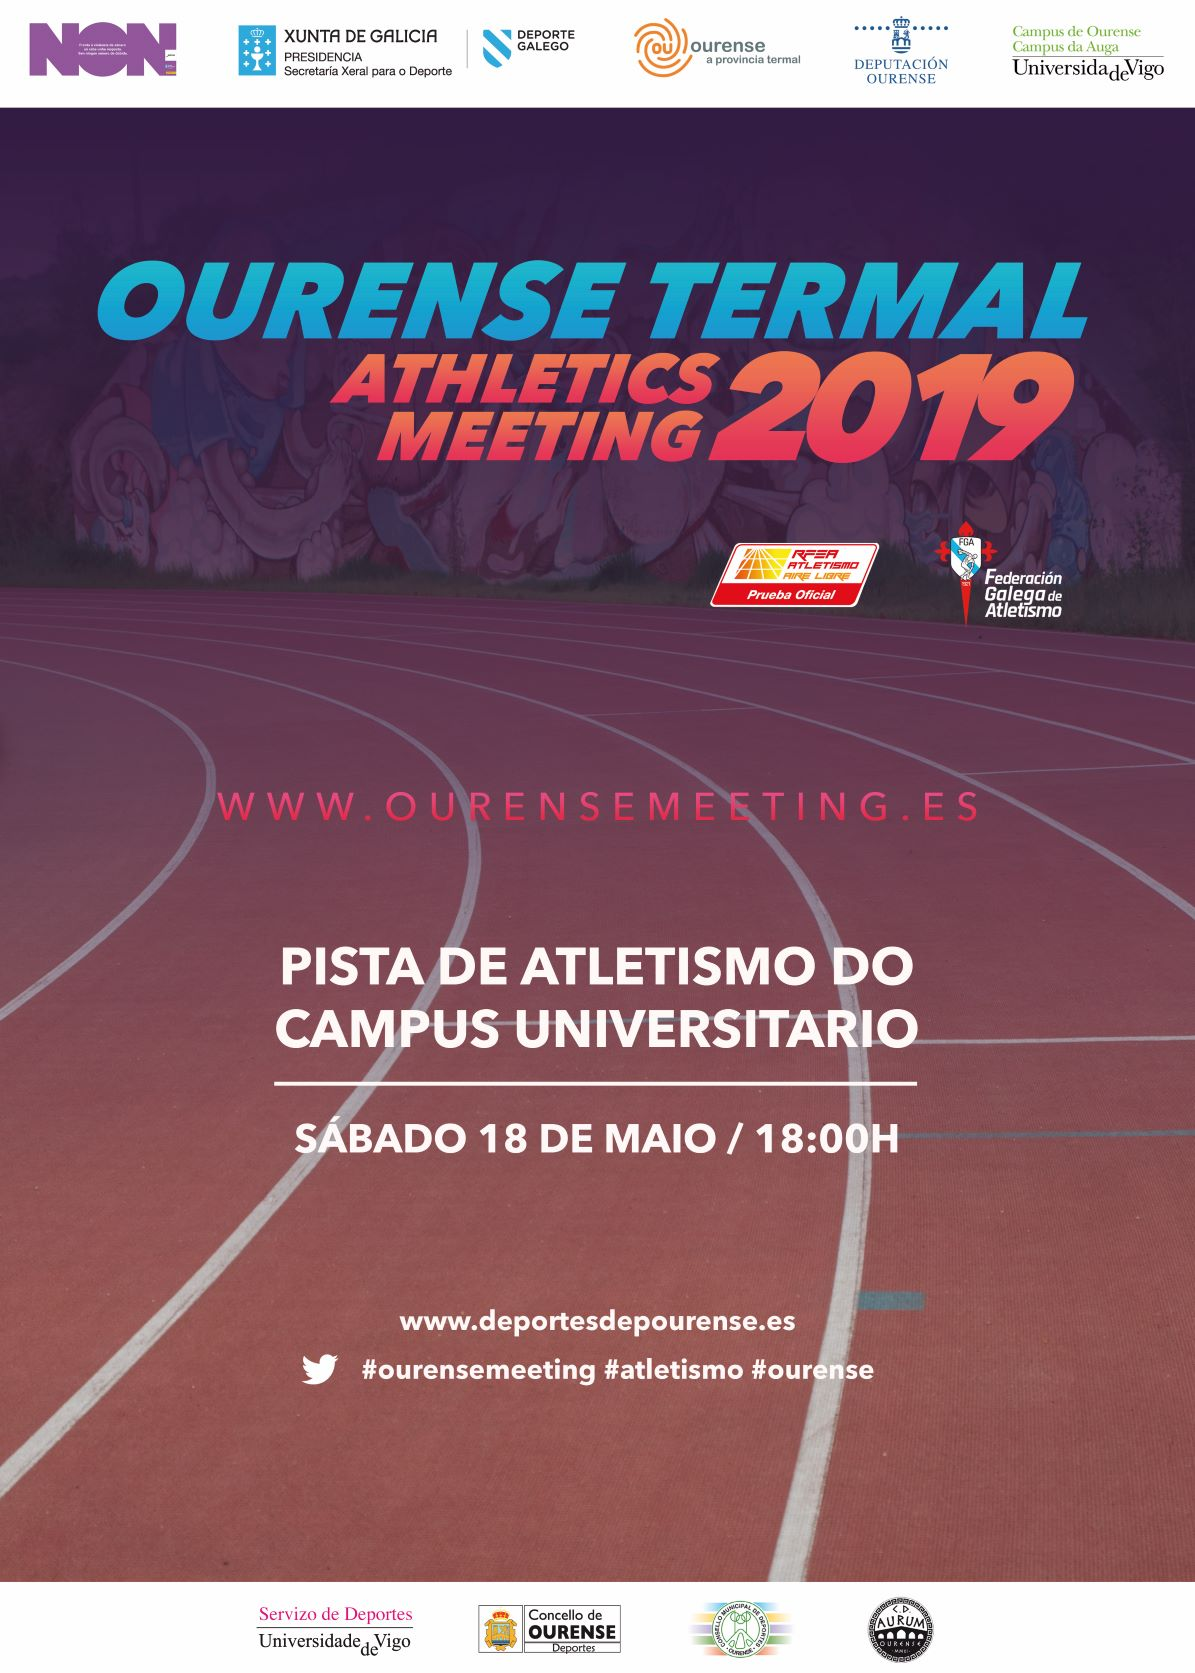 Ourense Termal Athletics Meeting 2019